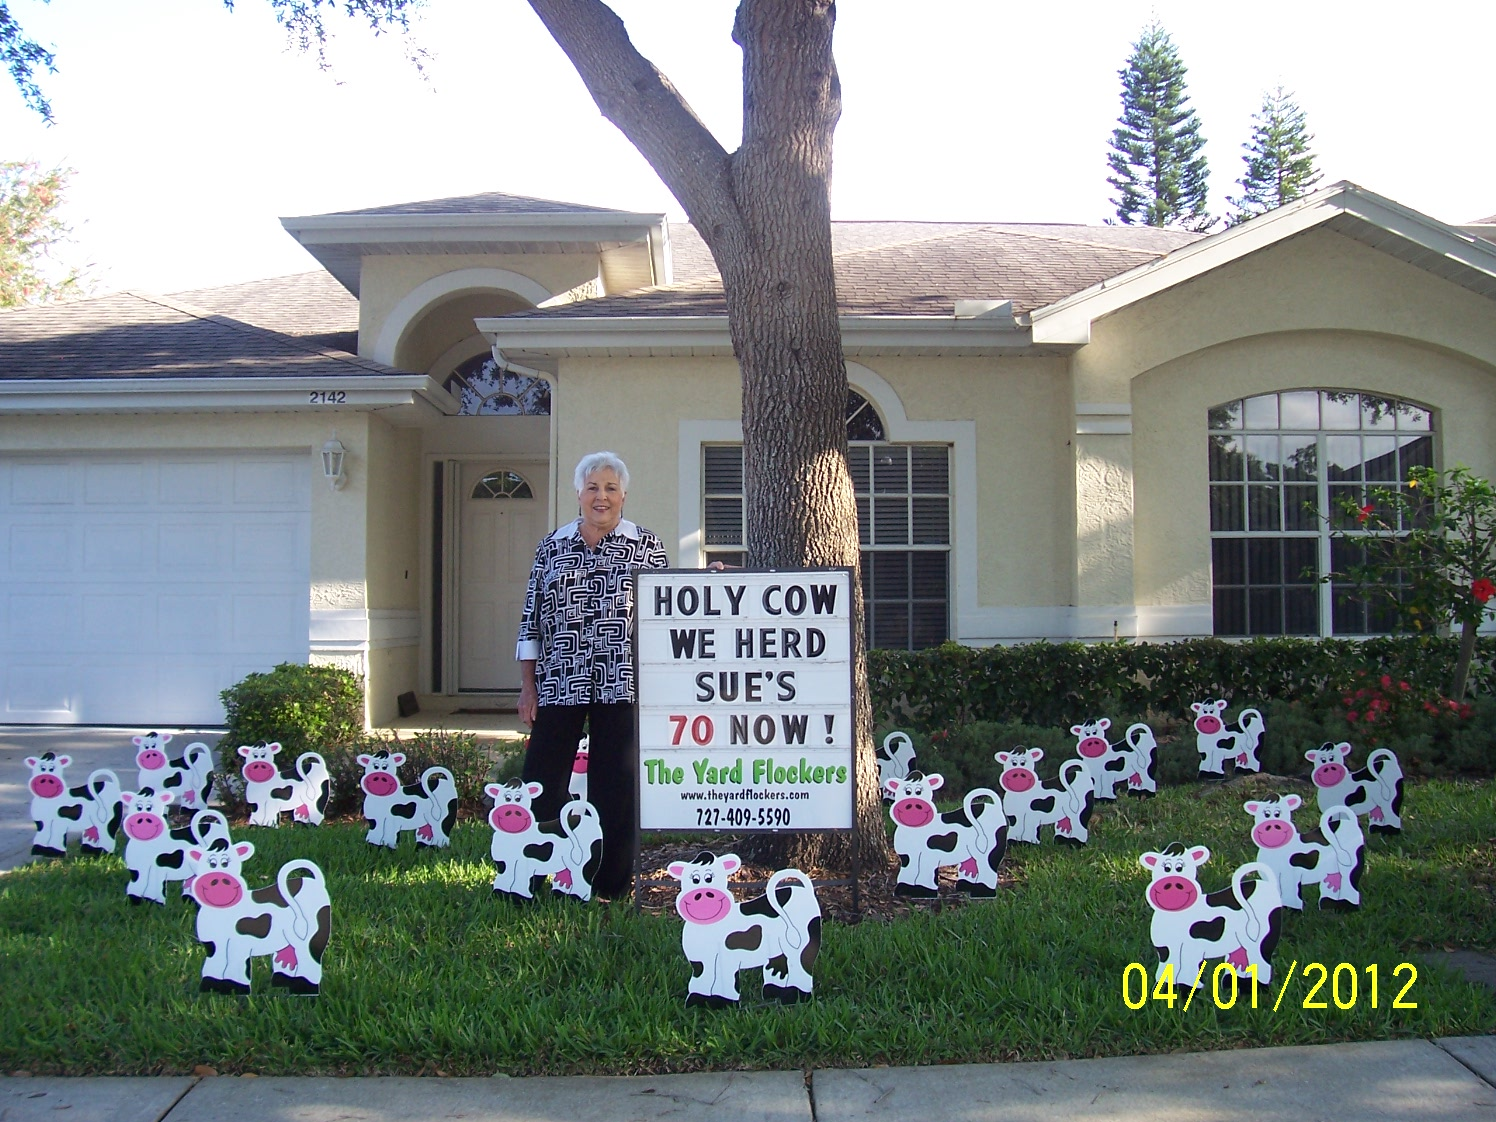 Birthday Yard Flocking Lawn Decorations Serving Tampa Bay Florida